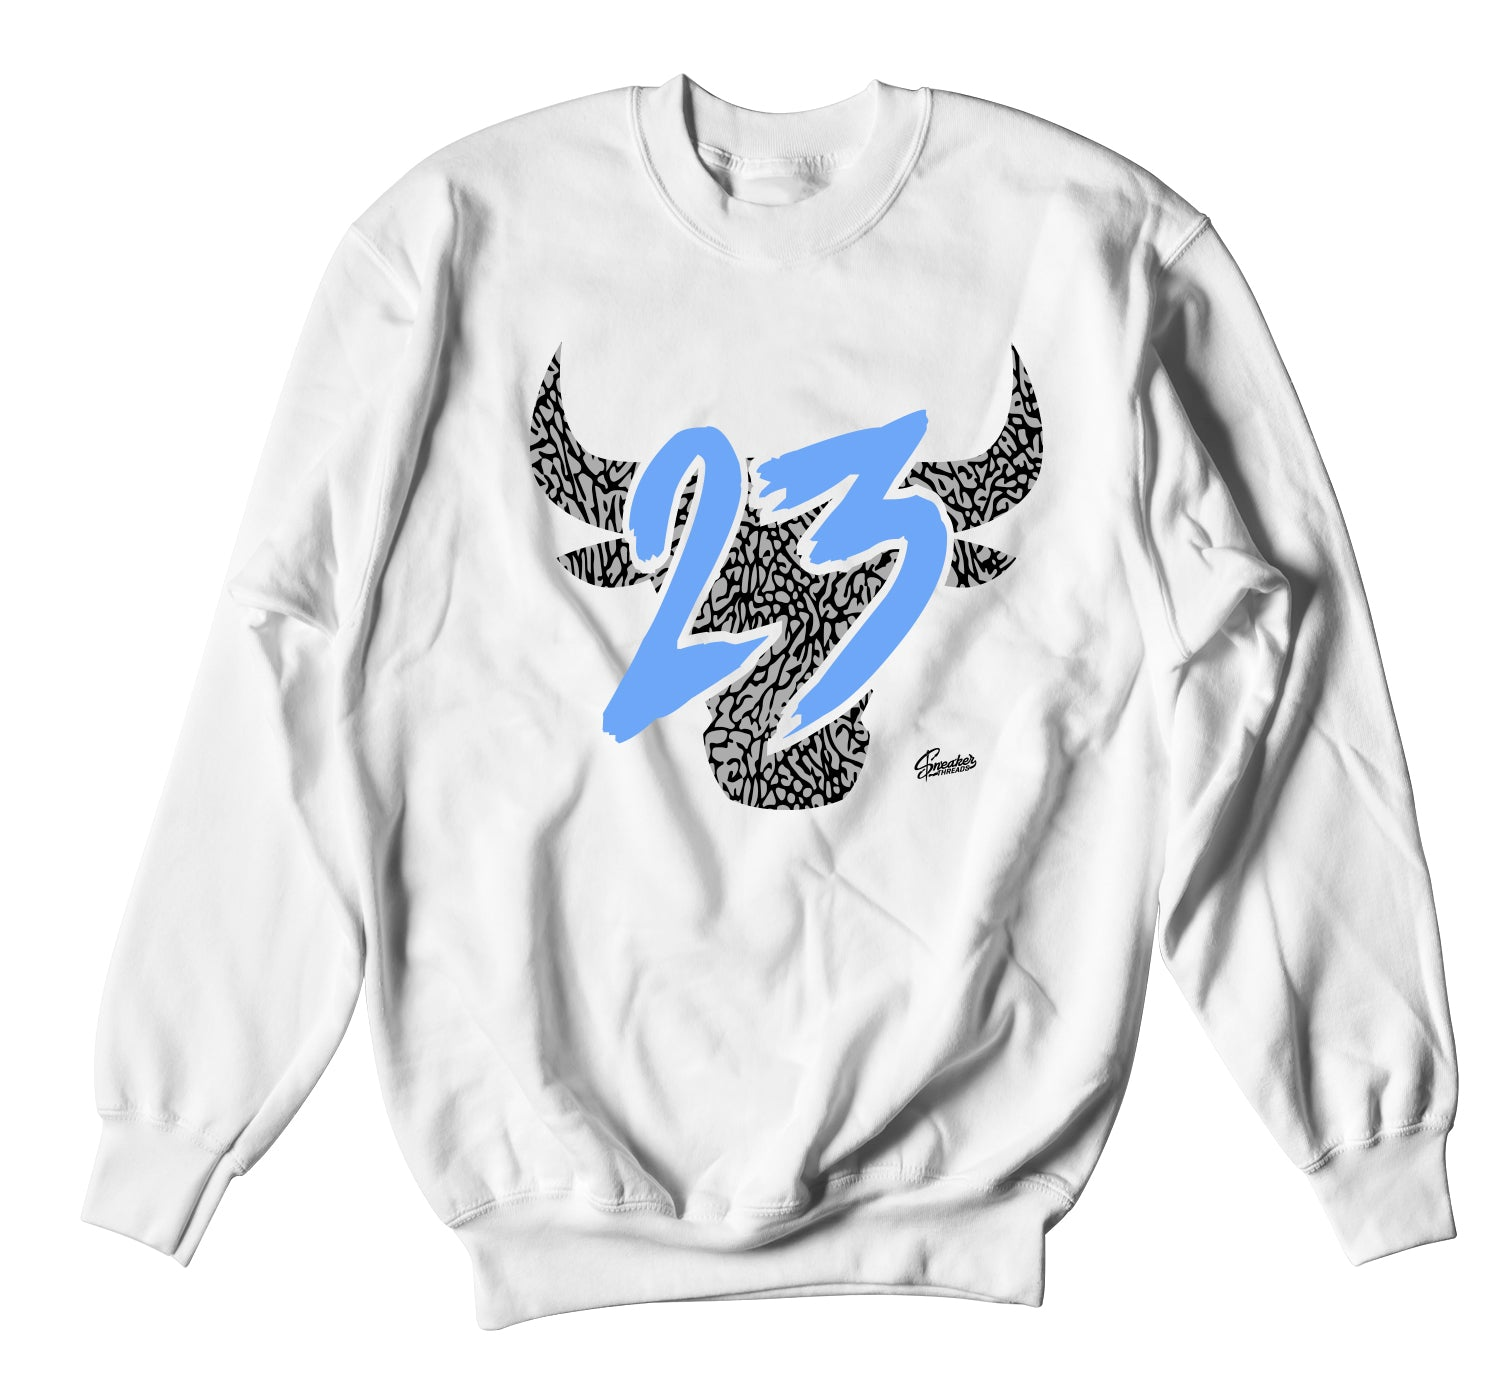 Jordan 3 UNC Sweater - Toro - White